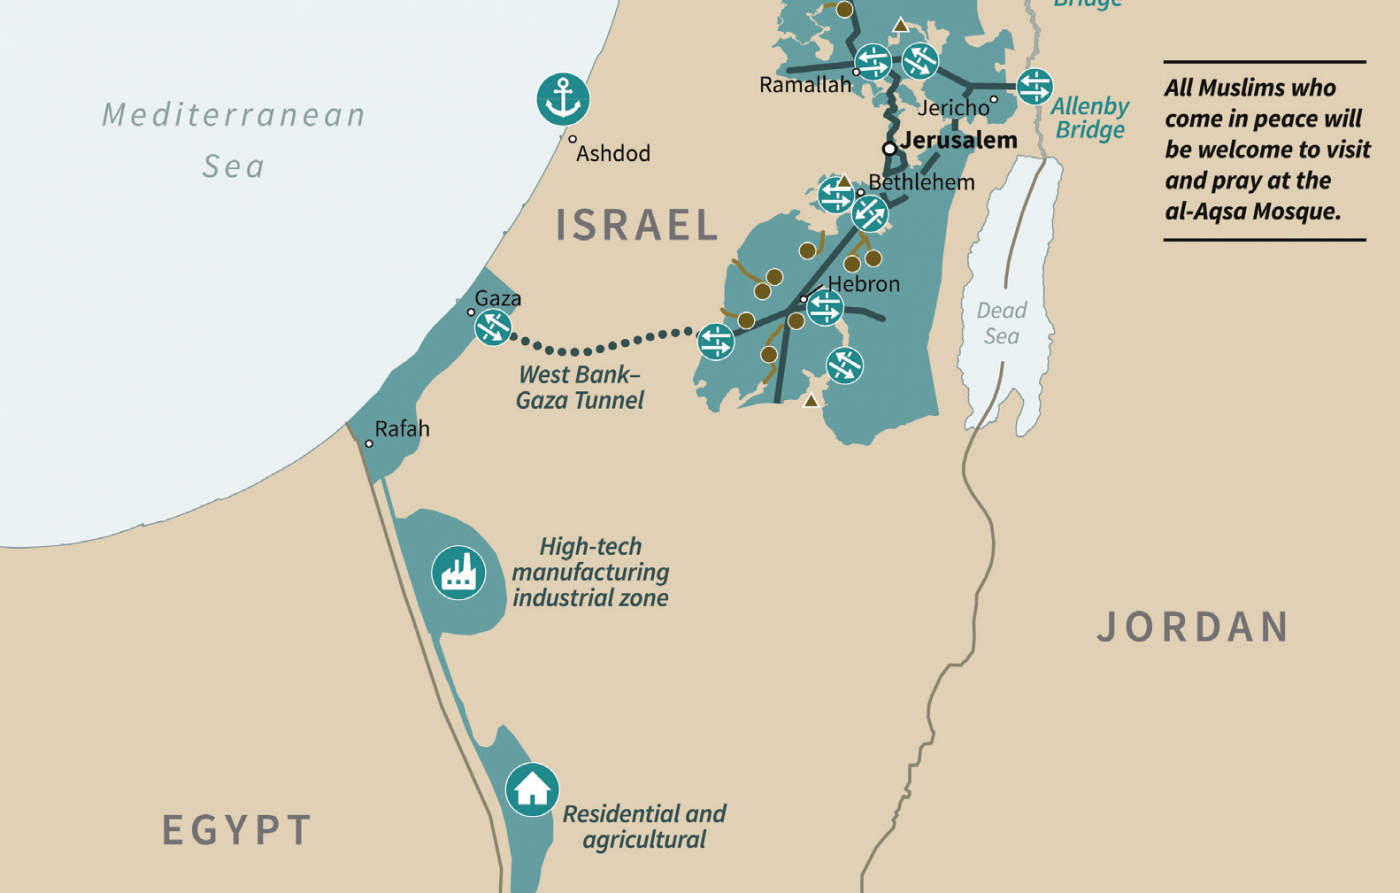 Israel Middle East Map REVEALED: Trump's 'deal of the century' map for a future Palestine